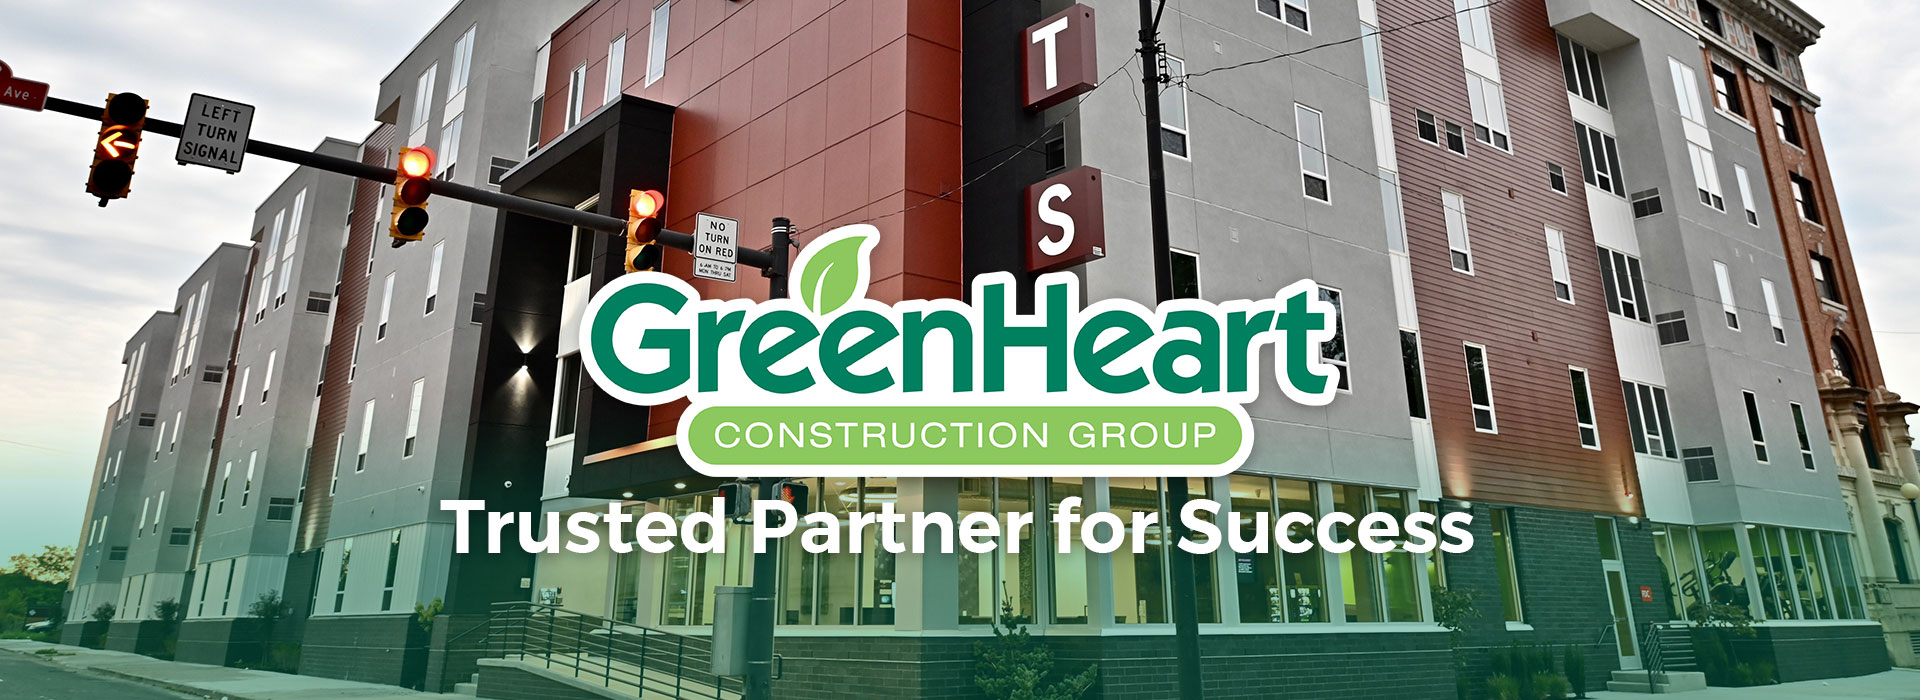 GreenHeart Construction Group - Trusted Partner for Success